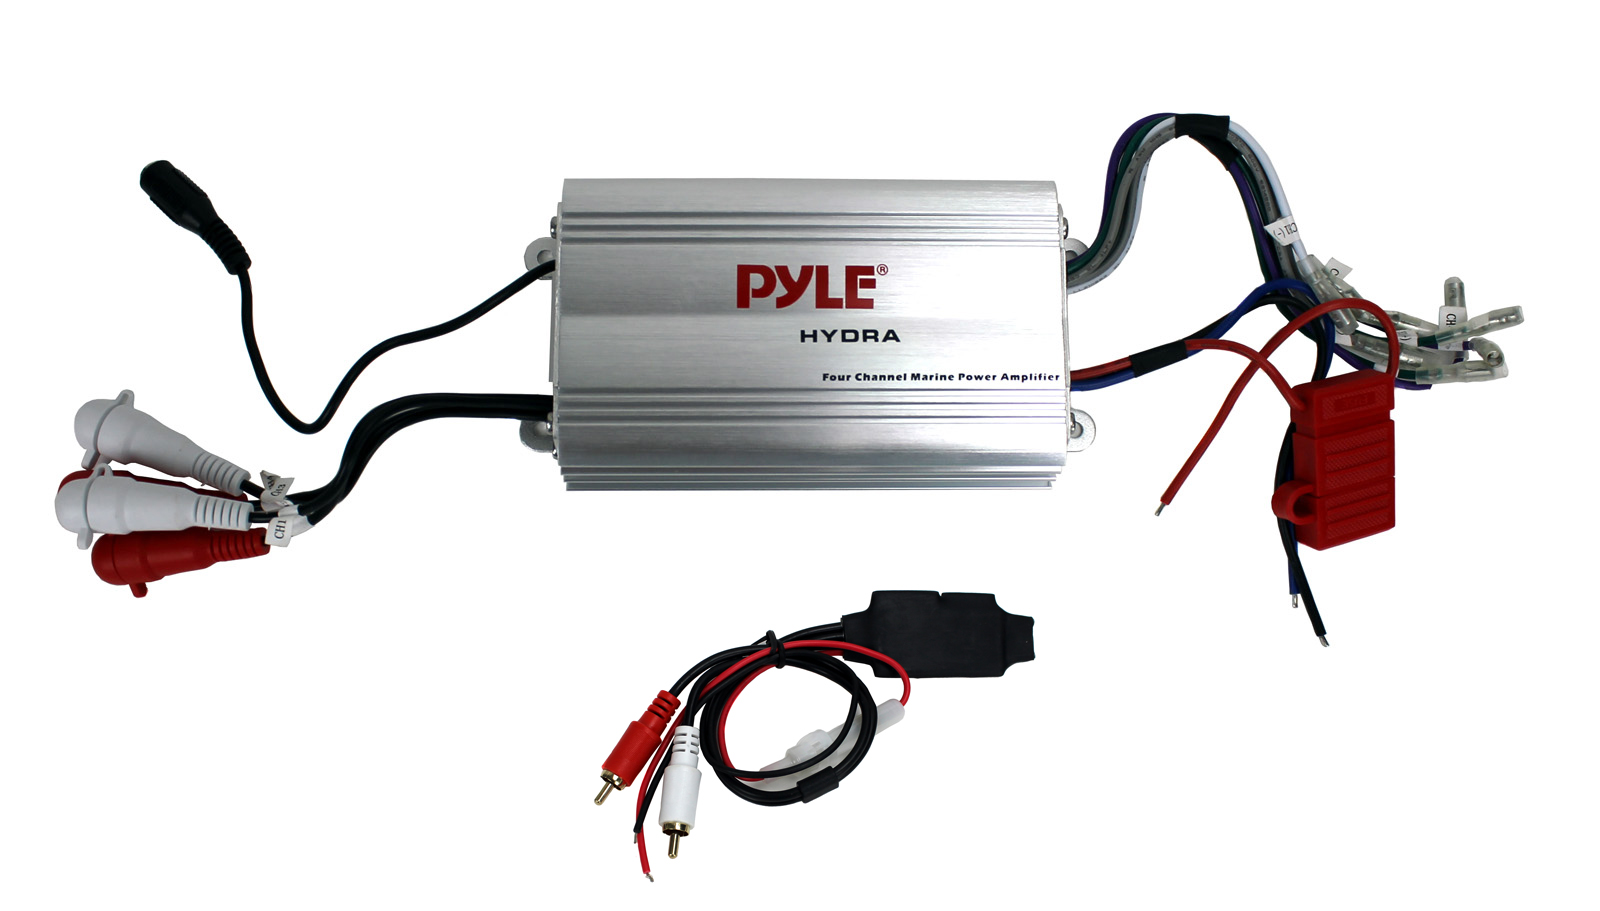 pyle plmrmp3a 4 channel marine waterproof mp3 ipod amplifier pyle plmrmp3a wiring diagram [ 1600 x 911 Pixel ]